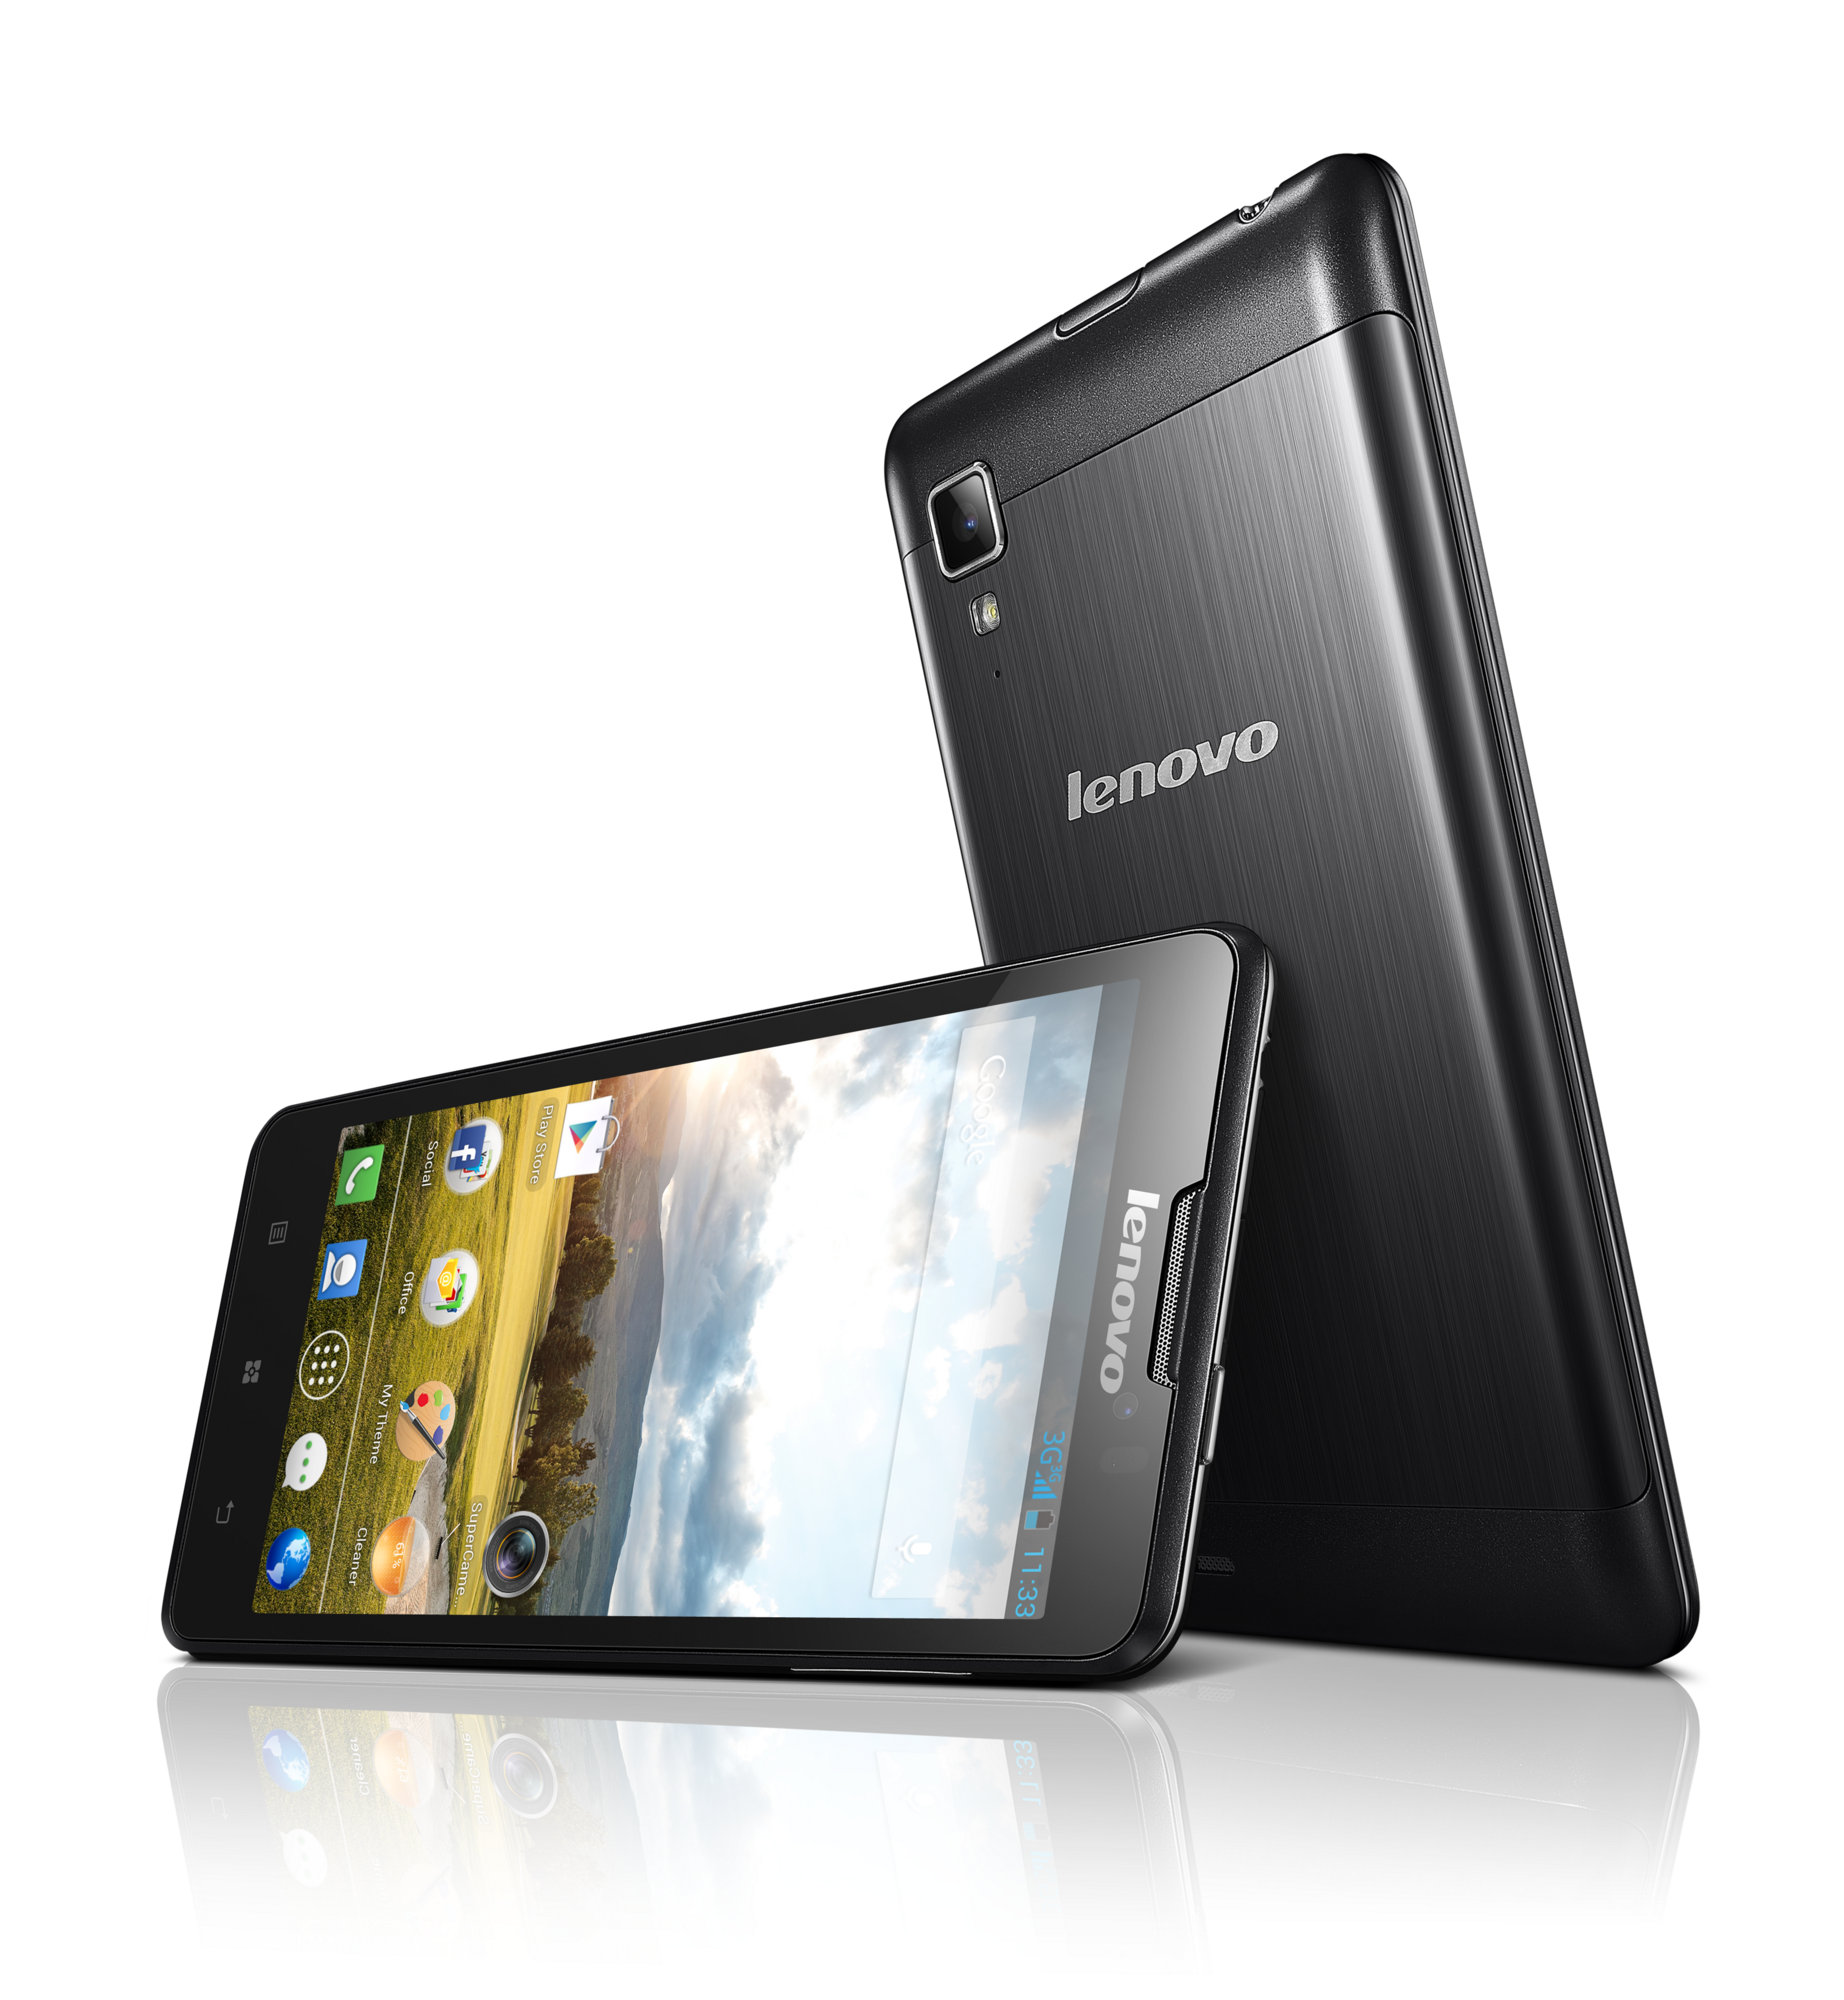 Hard Reset Lenovo IdeaPhone P780